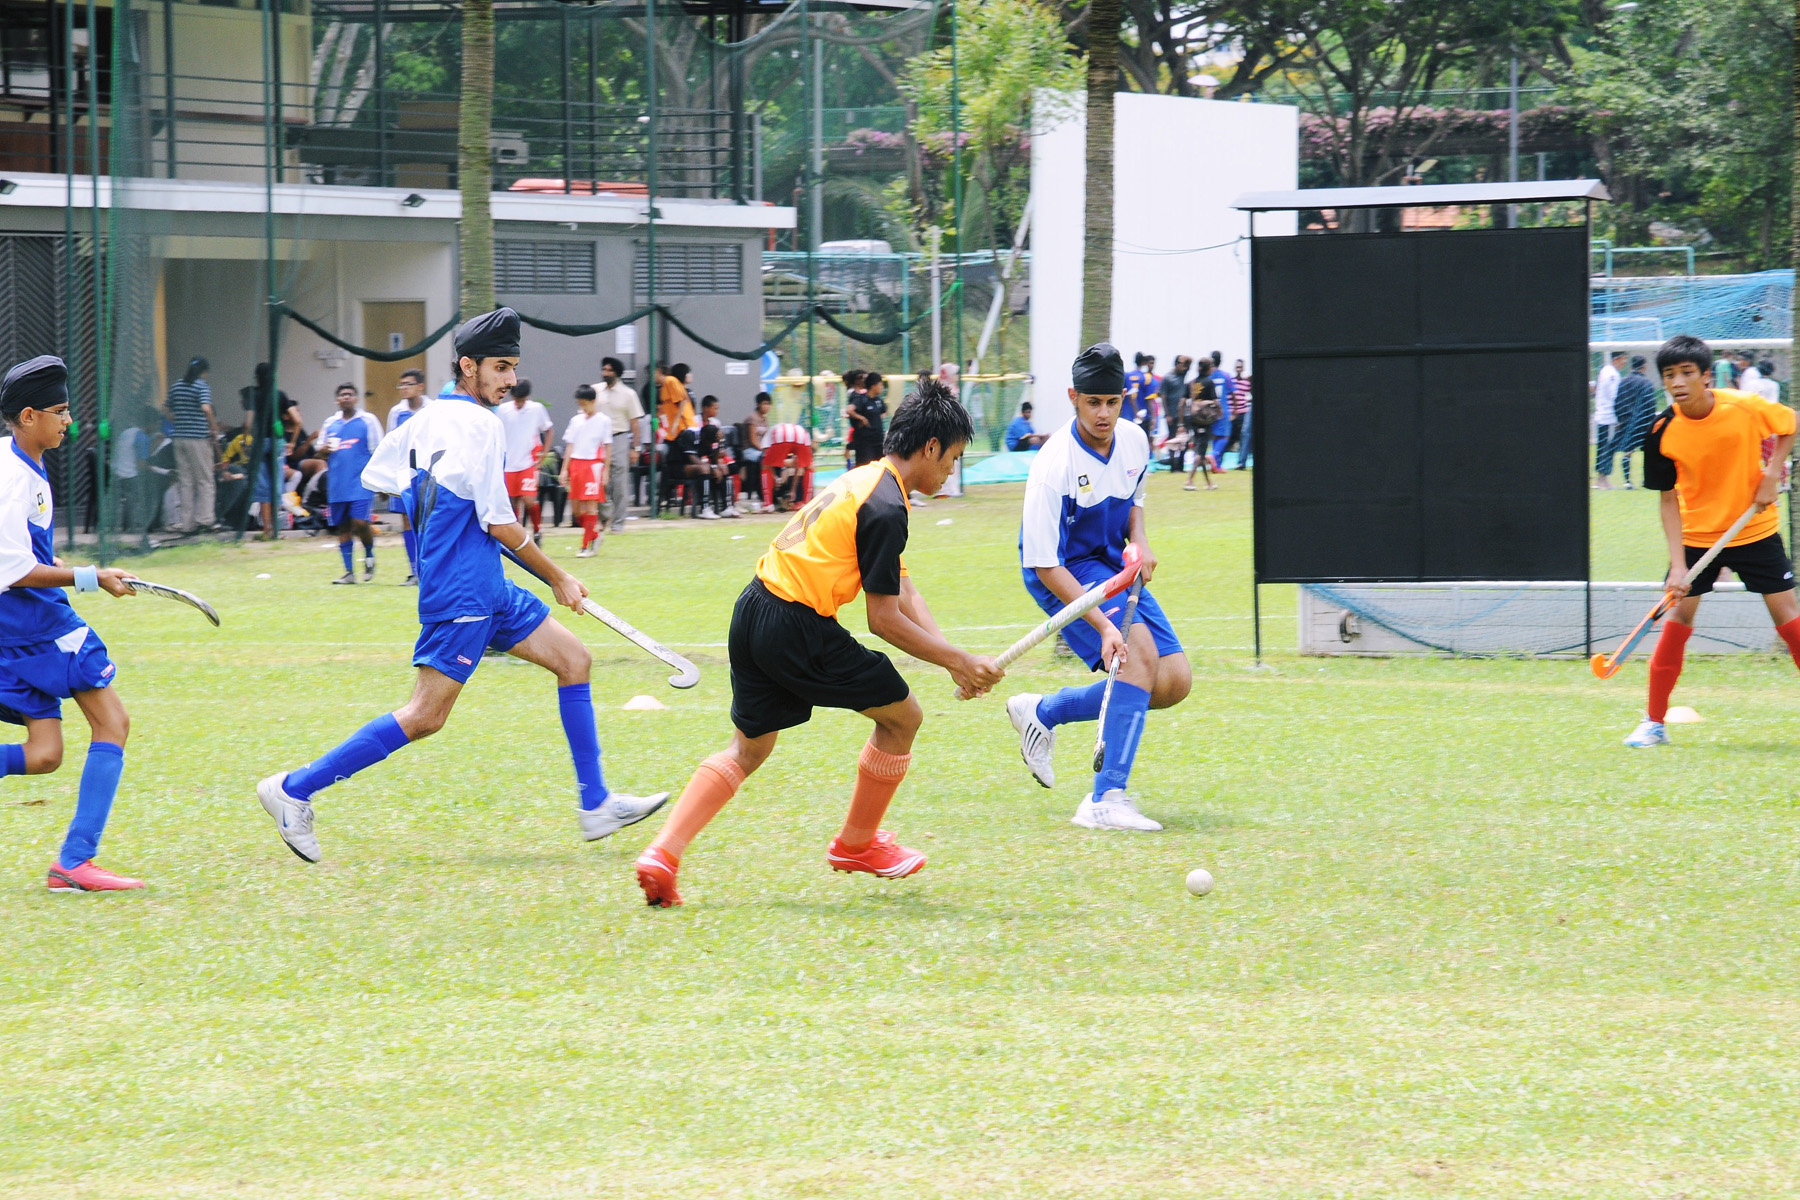 SKA regularly organises hockey tournaments which are quite popular in Singapore. Photo courtesy: SKA